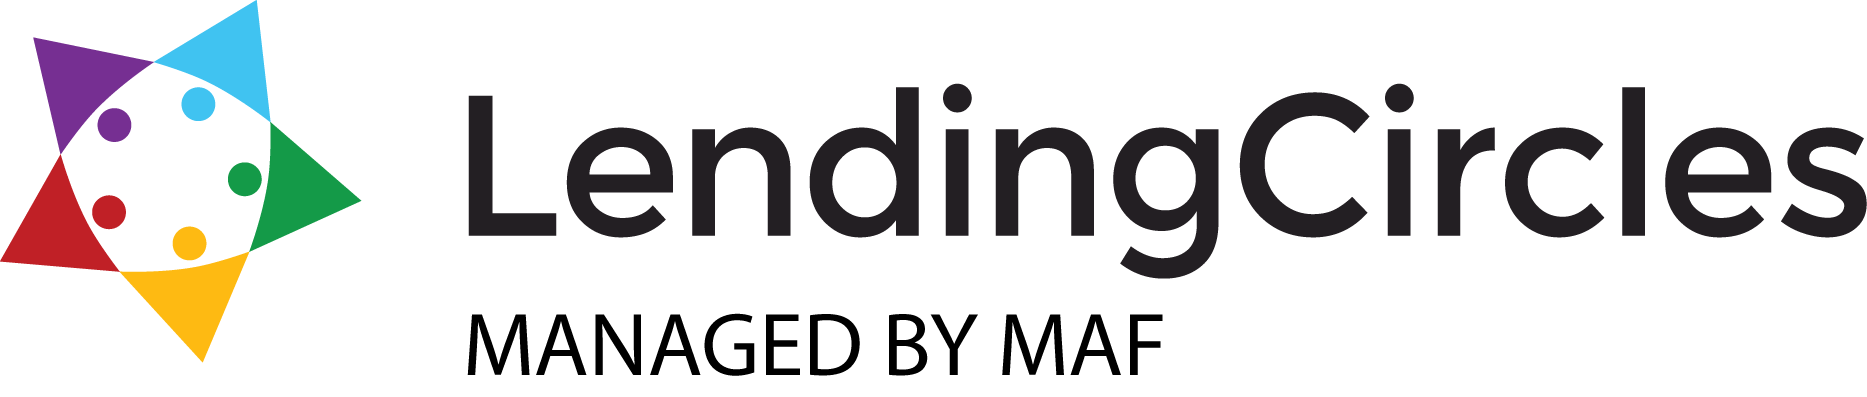 Lending Circles managed by Mission Asset Fund